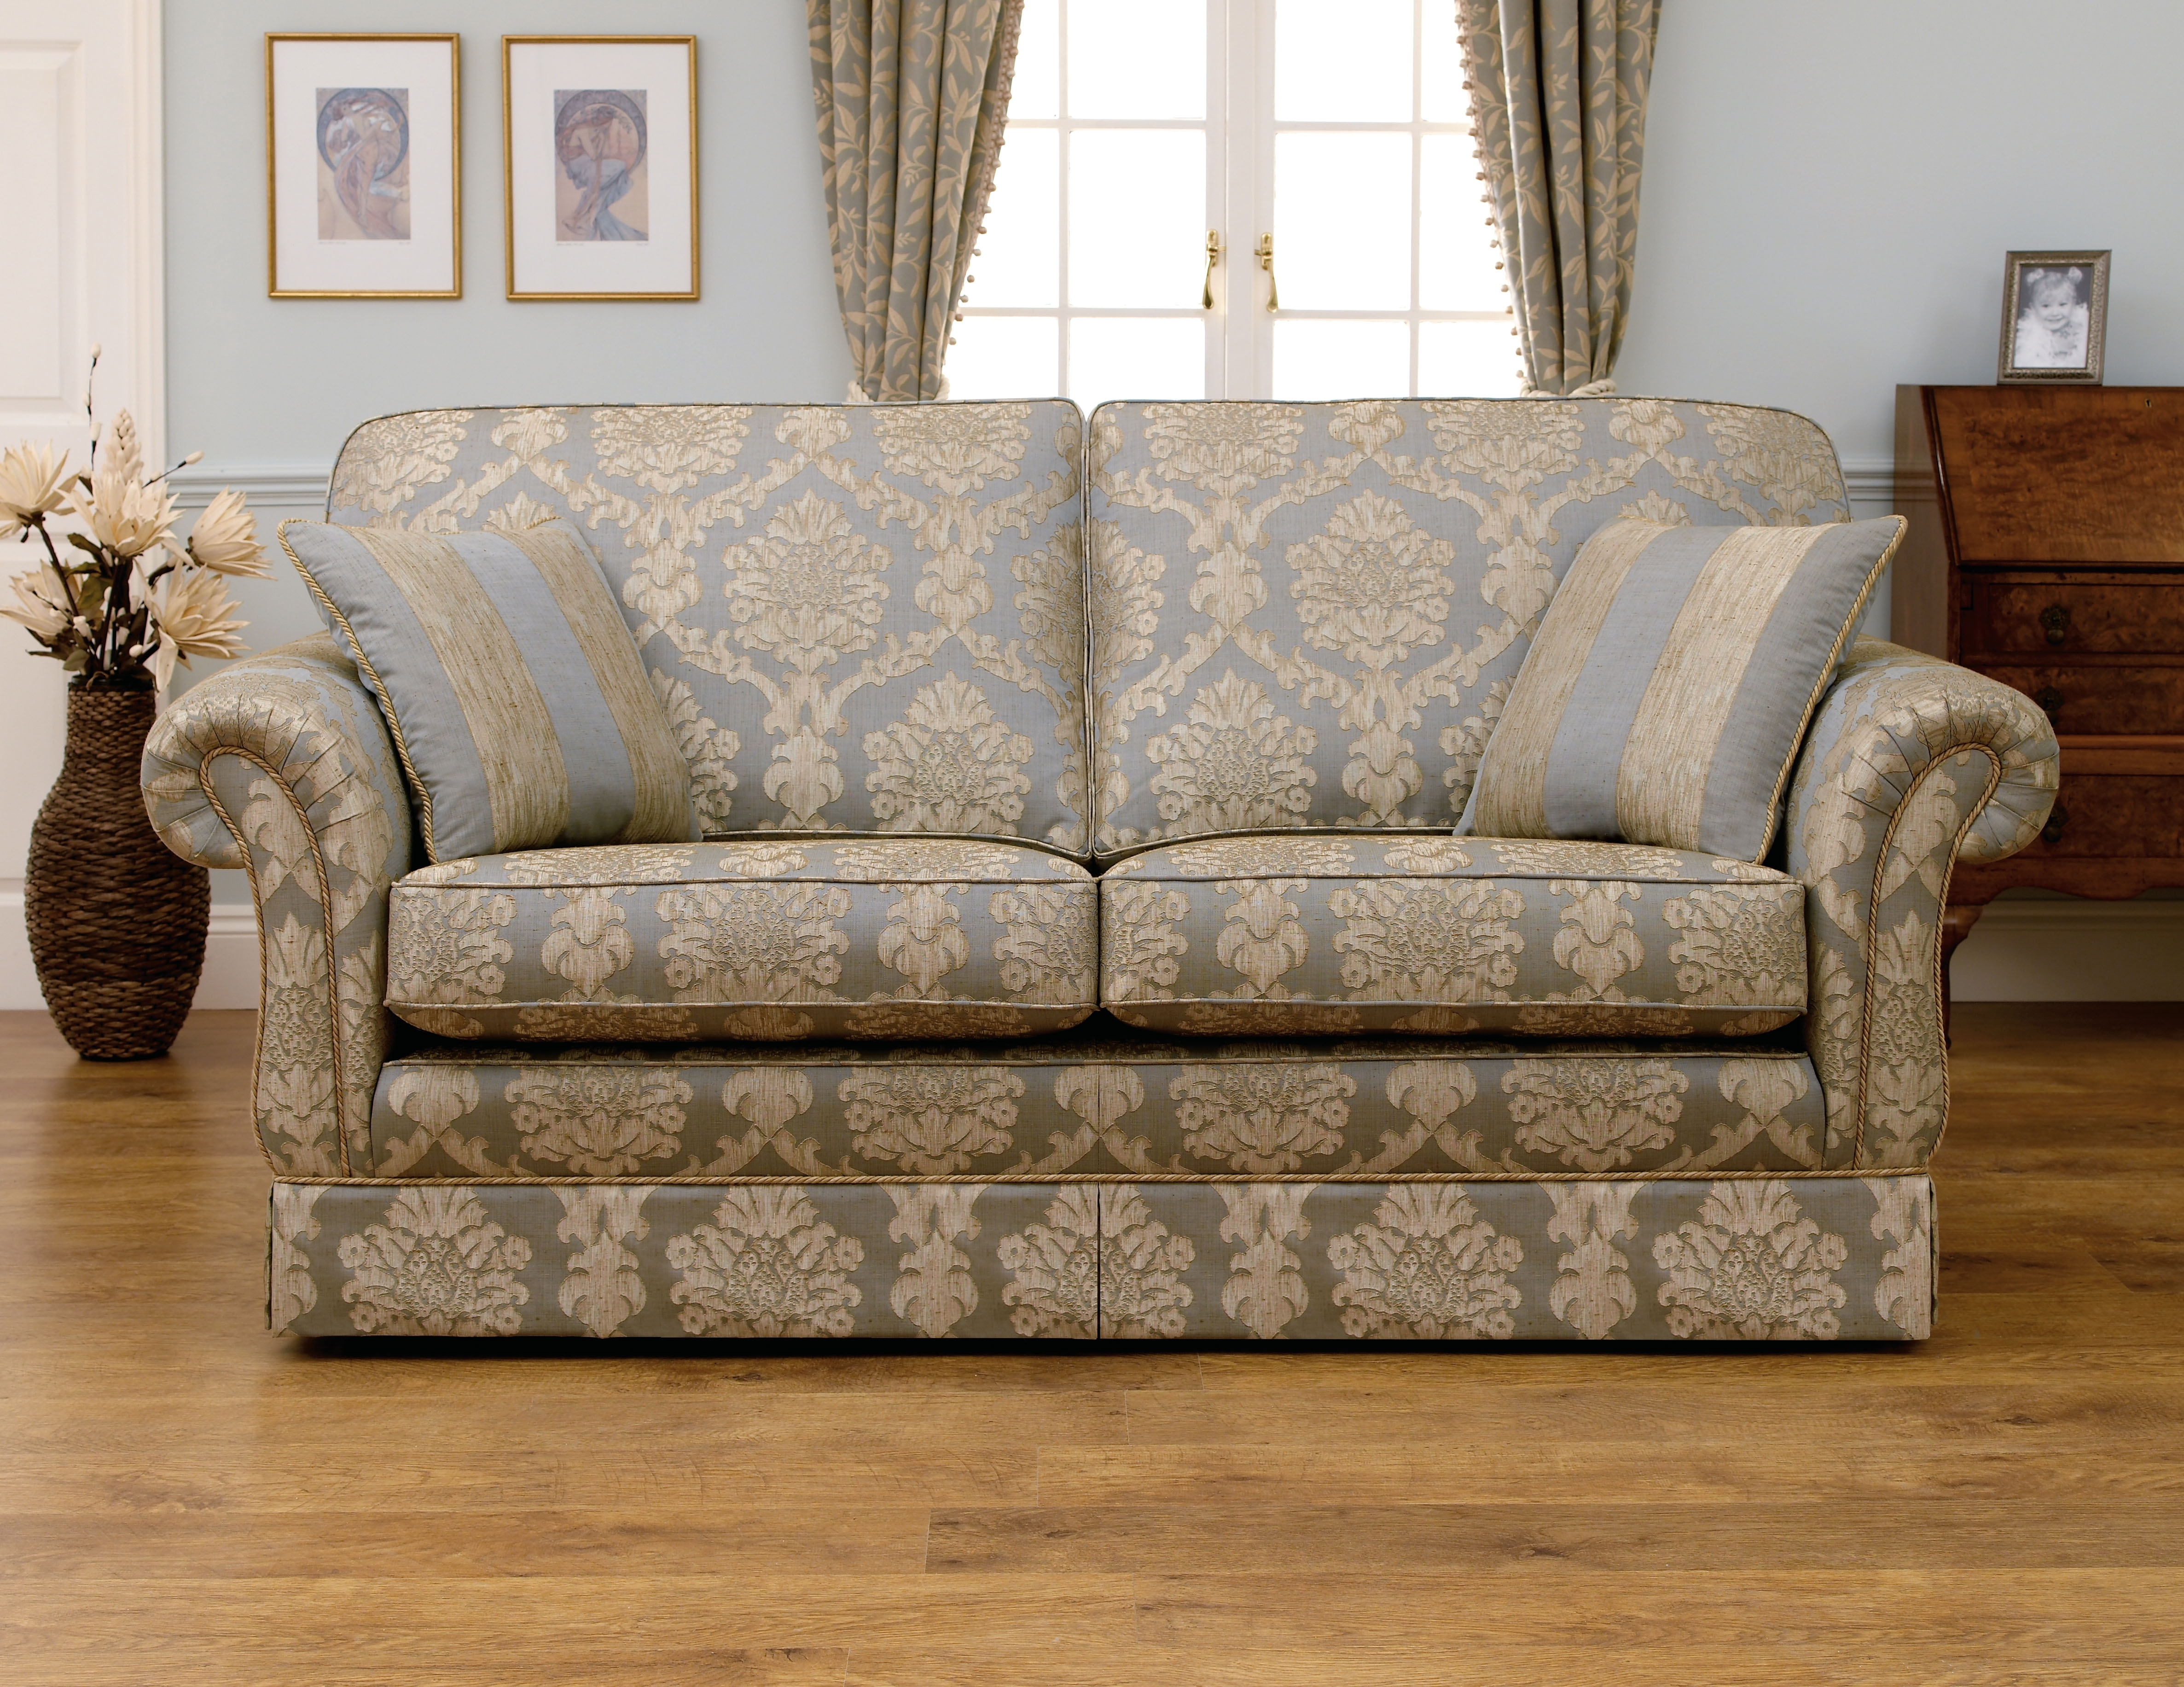 Beautiful Sofa Styles For Your Sofas Wonderful Distressed Leather Intended For Classic Sofas (Image 1 of 10)